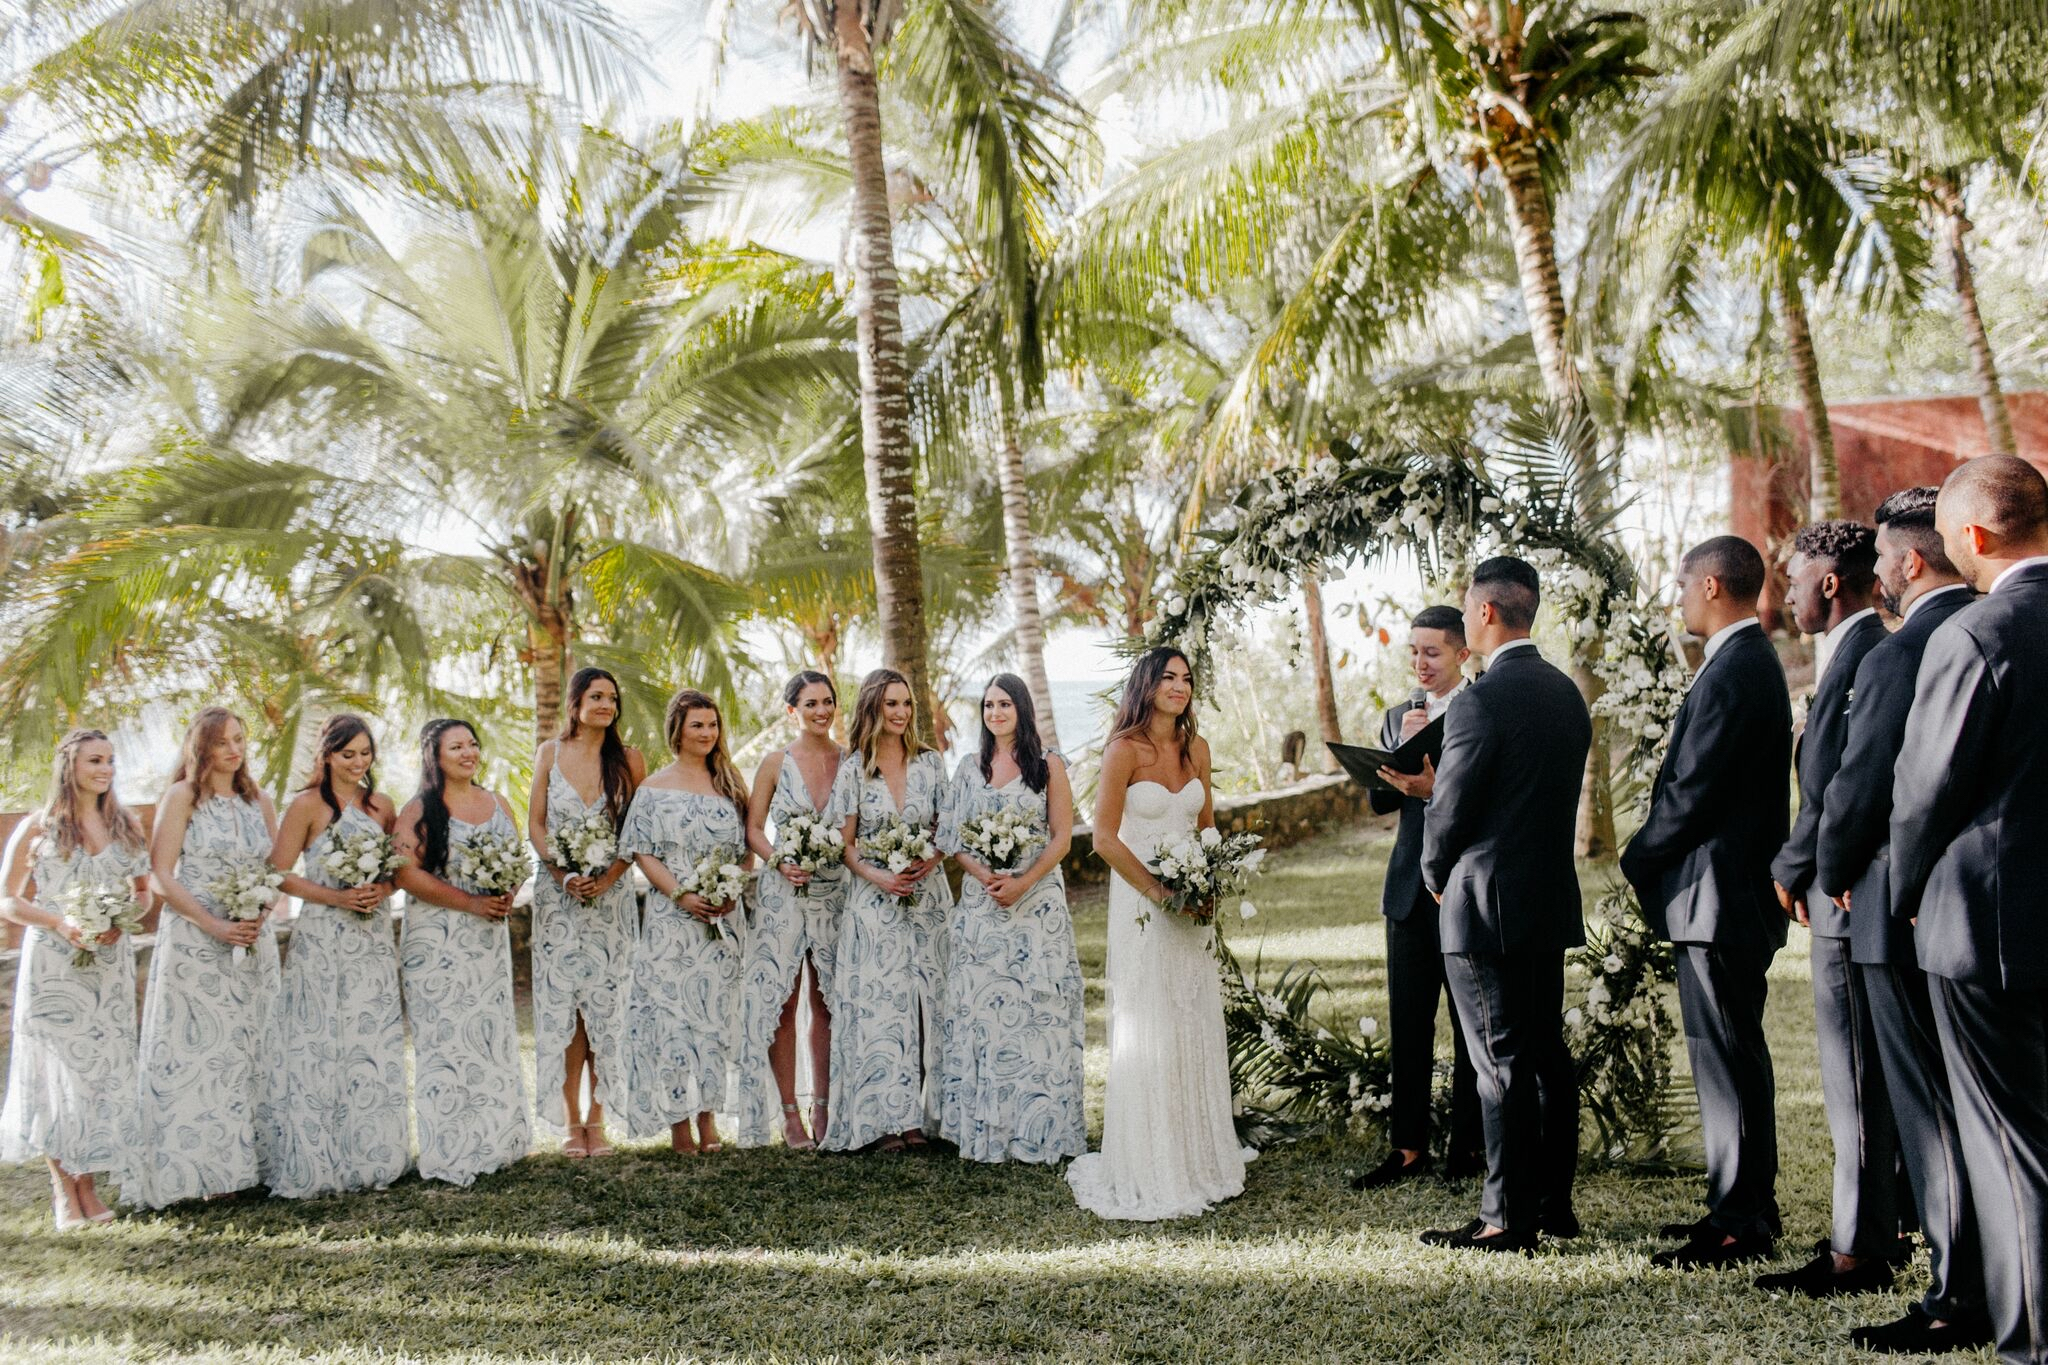 alexandra_celia_sayulita_wedding_britt_julio-1471_preview.jpg